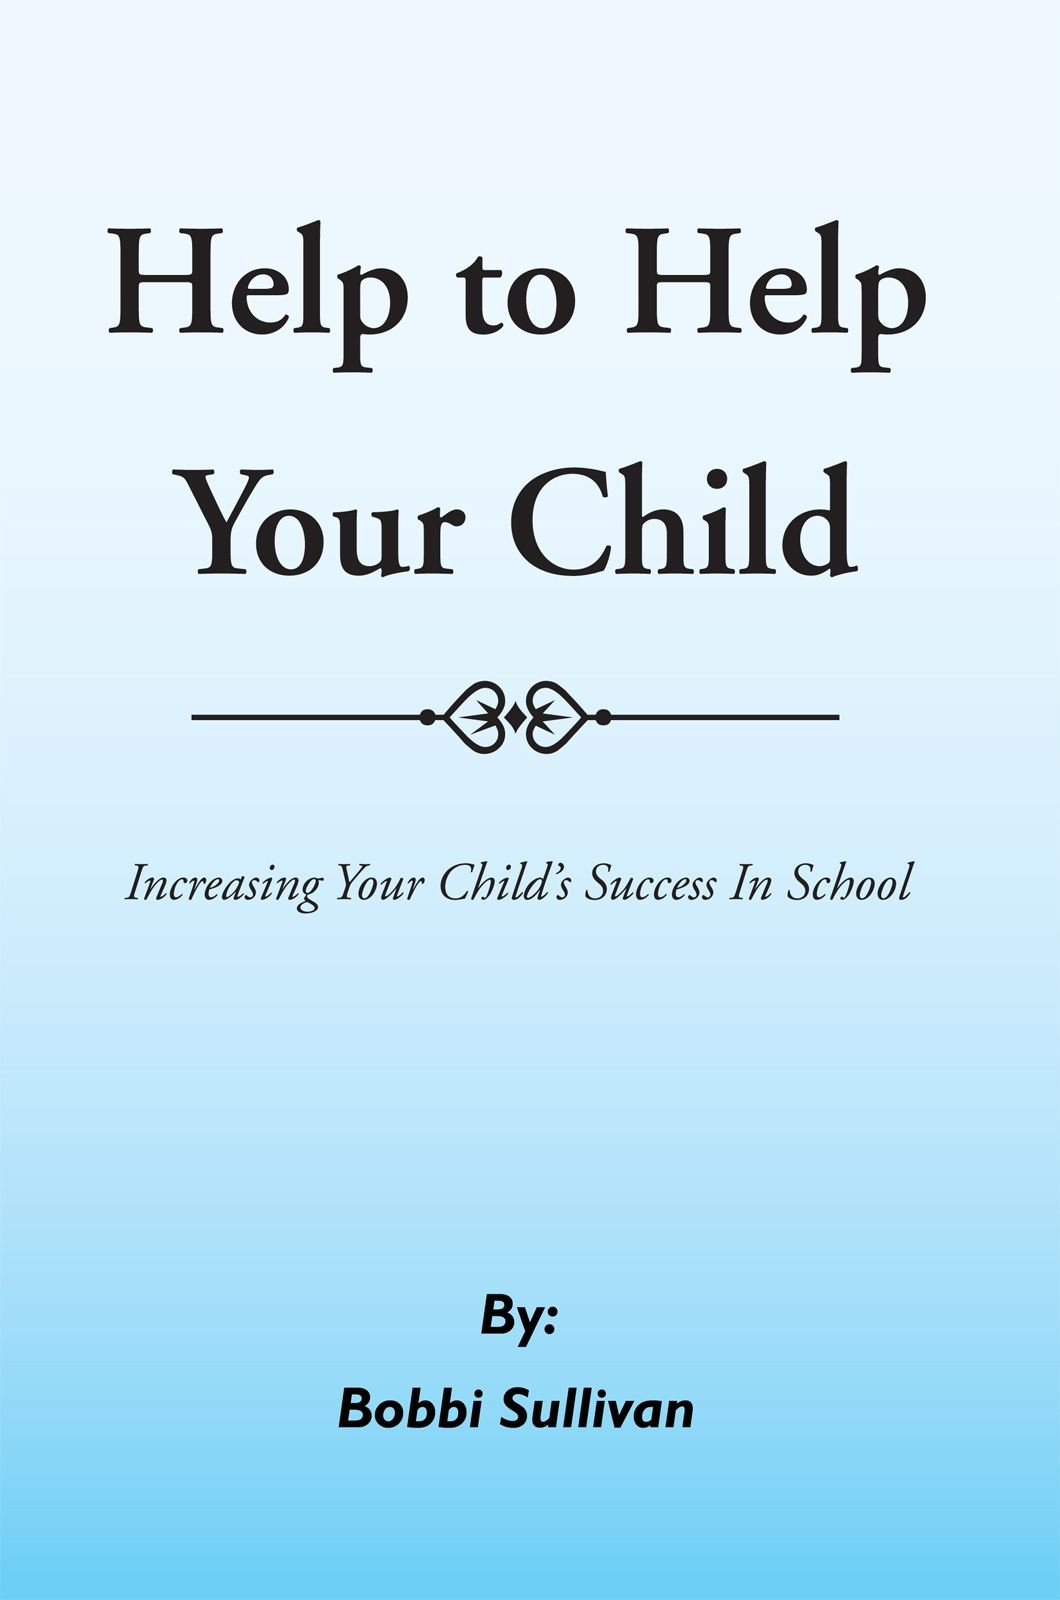 Help to Help Your Child By: Bobbi Sullivan